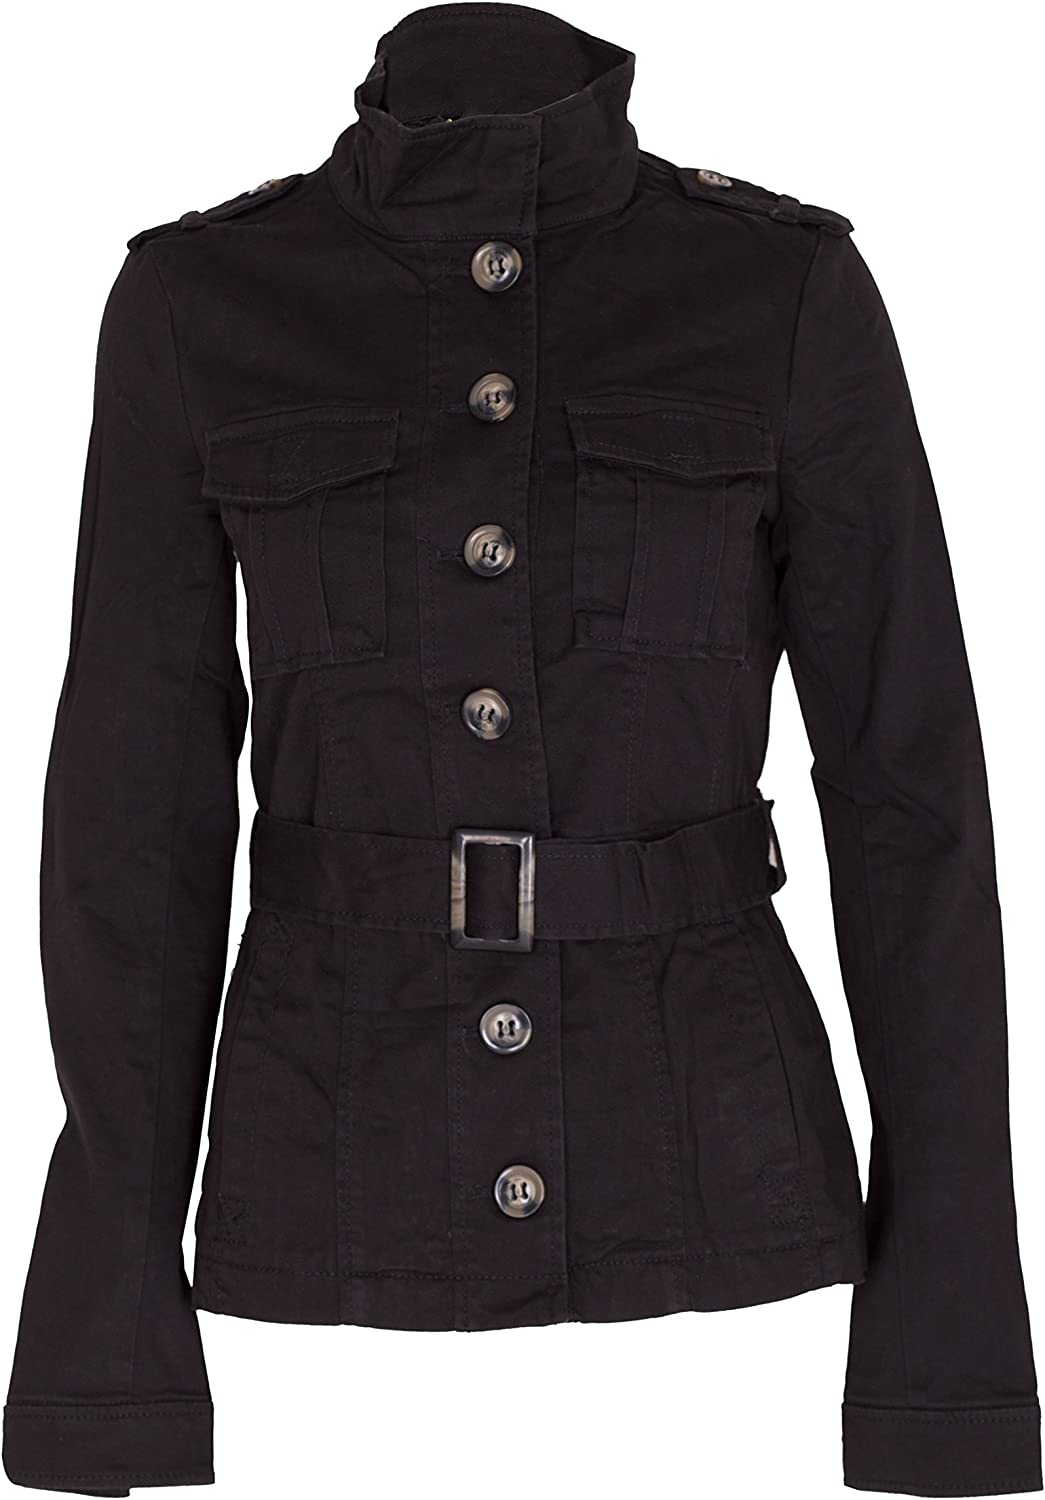 New Androse Teds Military Ladies Wool Coat Women Jacket Belt Trench Warm Outwear Gold Button Twill Black Purple Red UK 8-16